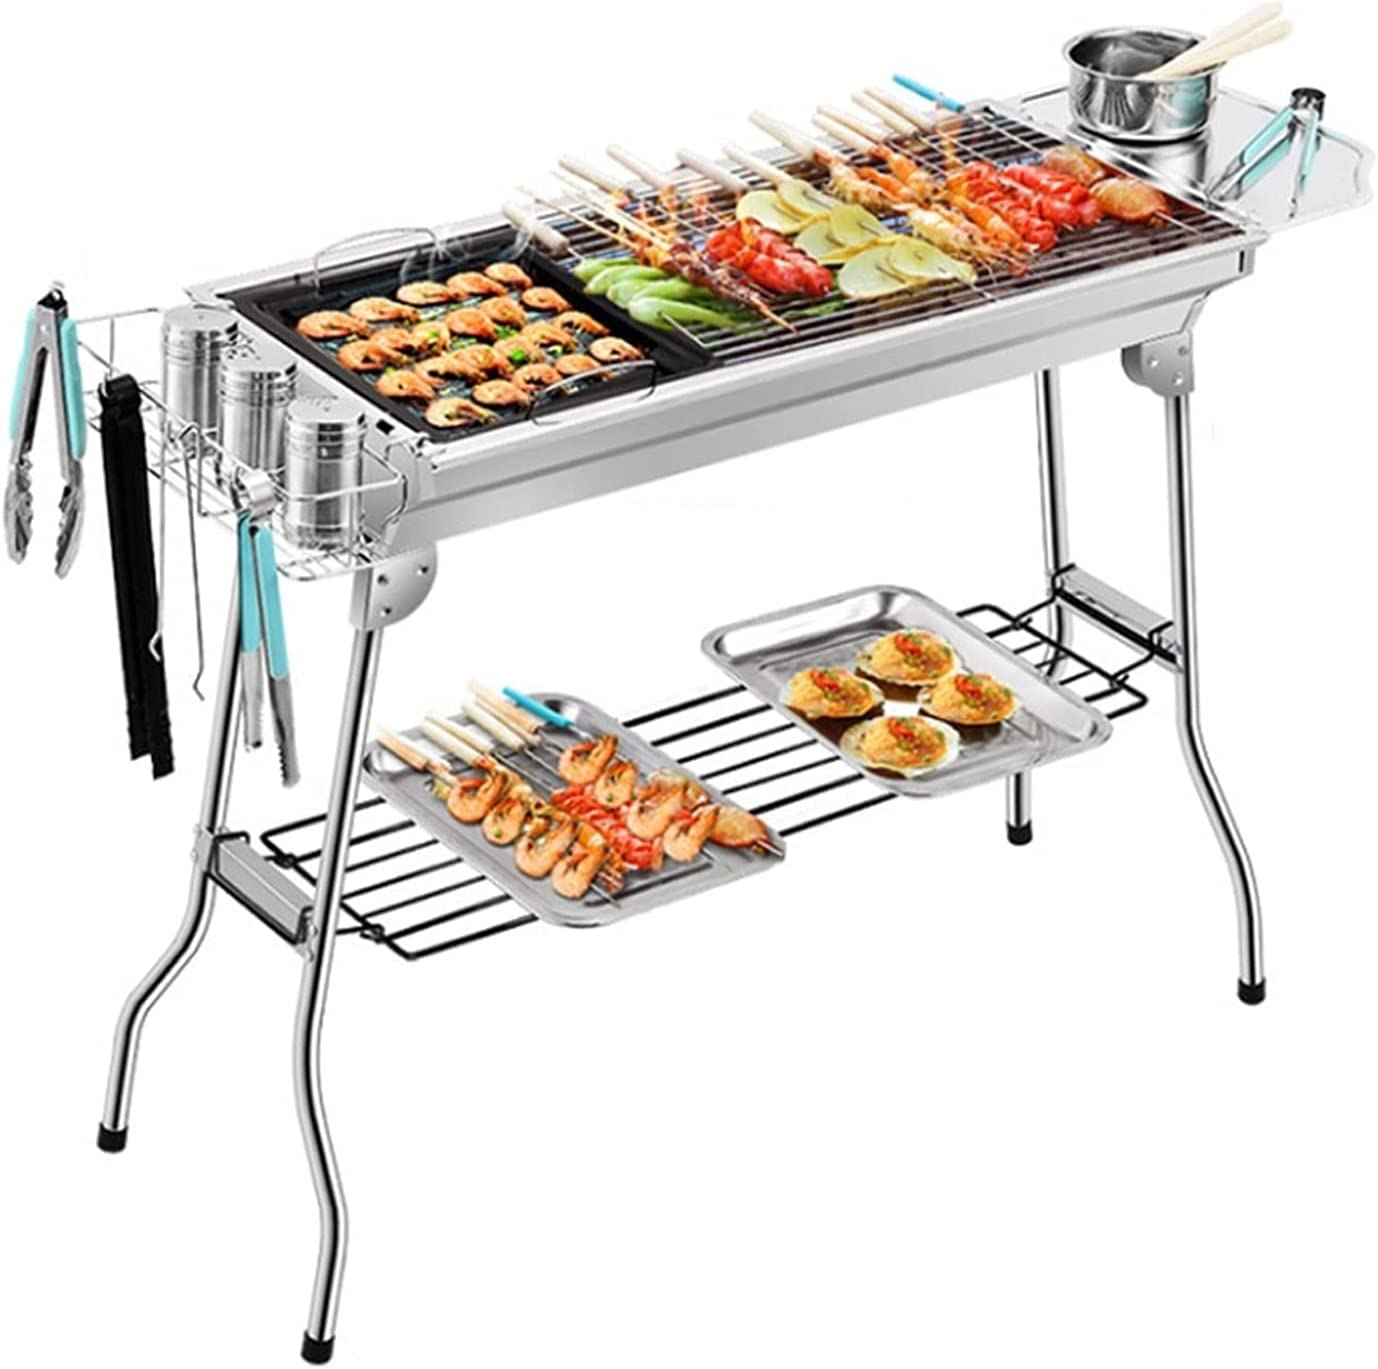 Portable Charcoal Popular products Grill Thick Stainless Field Outdoo Steel New products world's highest quality popular